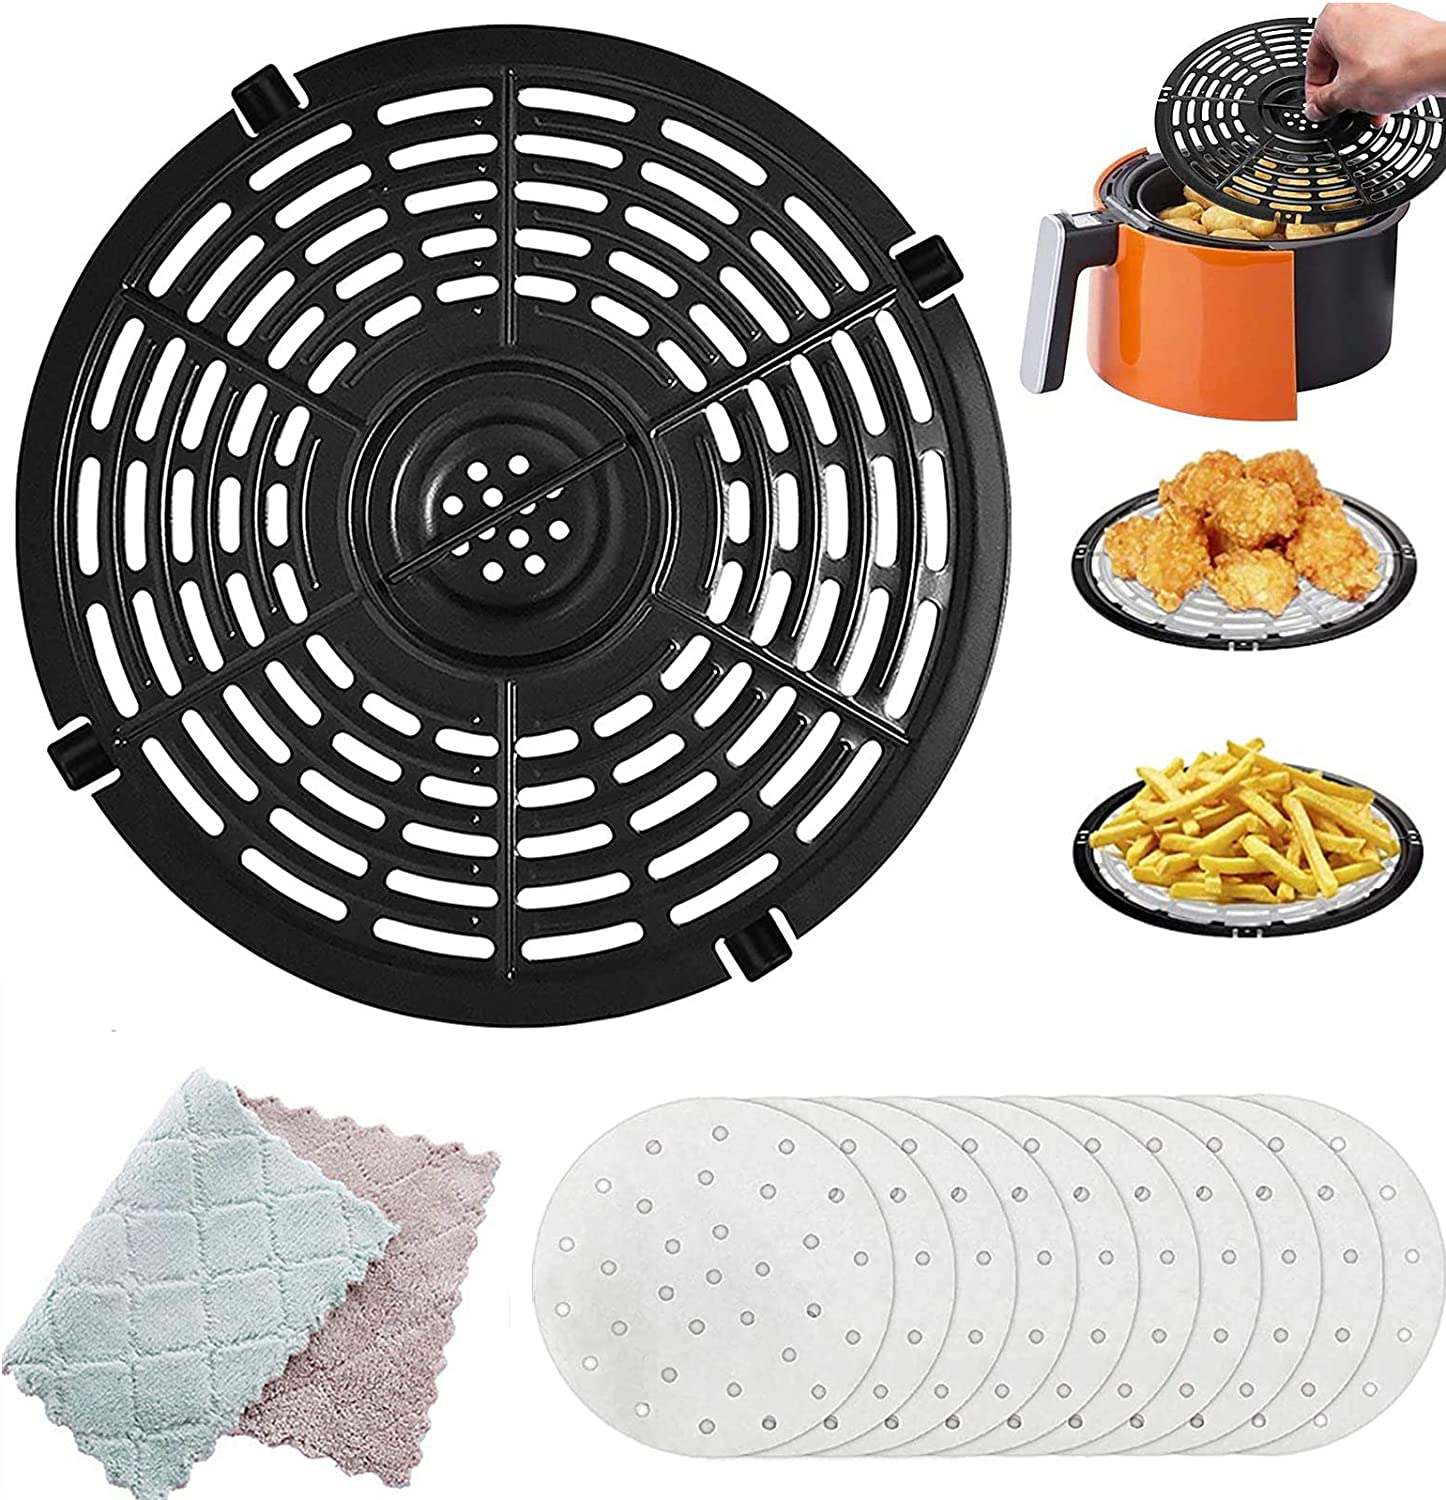 Air Fryer Replacement Grill Pan, Air Fryer Accessories,Non-Stick Fry Pan For Make French Fries, Pizza, Chicken Wings, Steak and so on(Free cleaning cloth and filter paper)